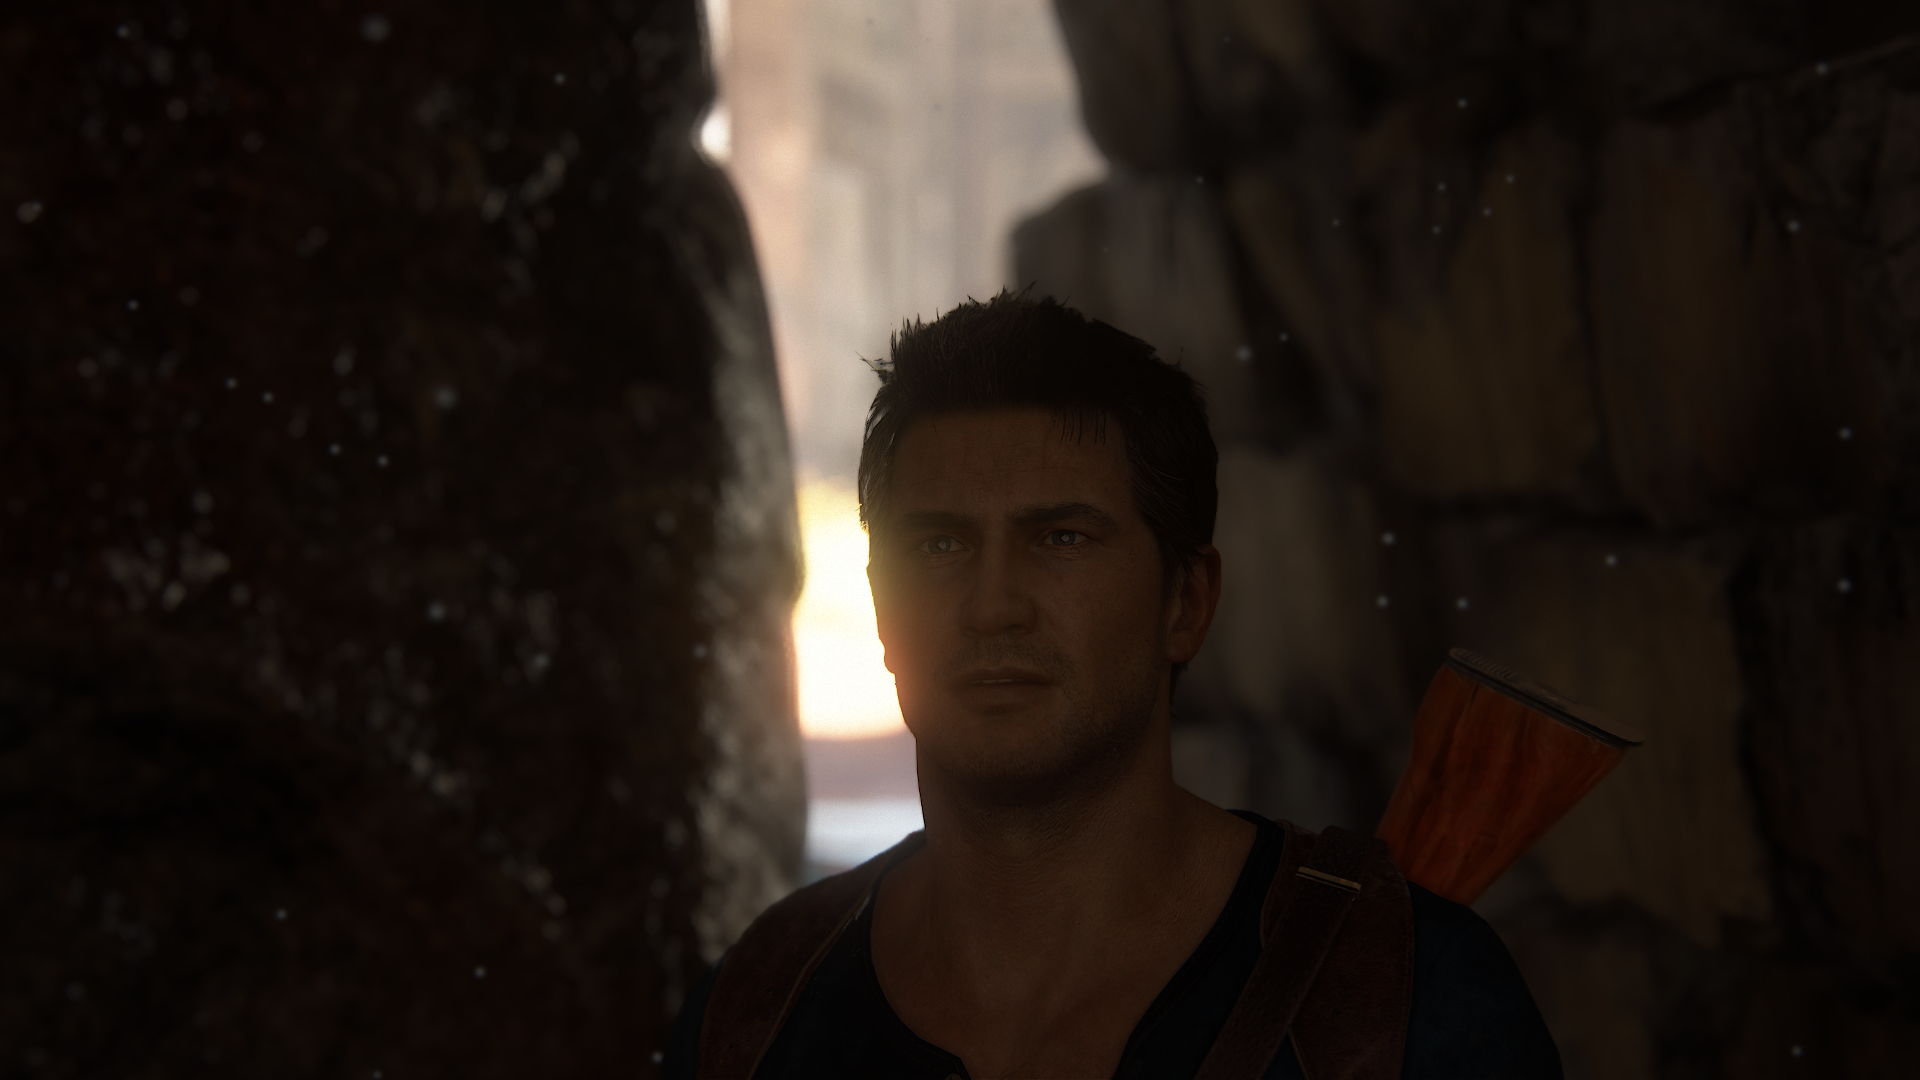 uncharted4_eldesenlacqrjo1.png